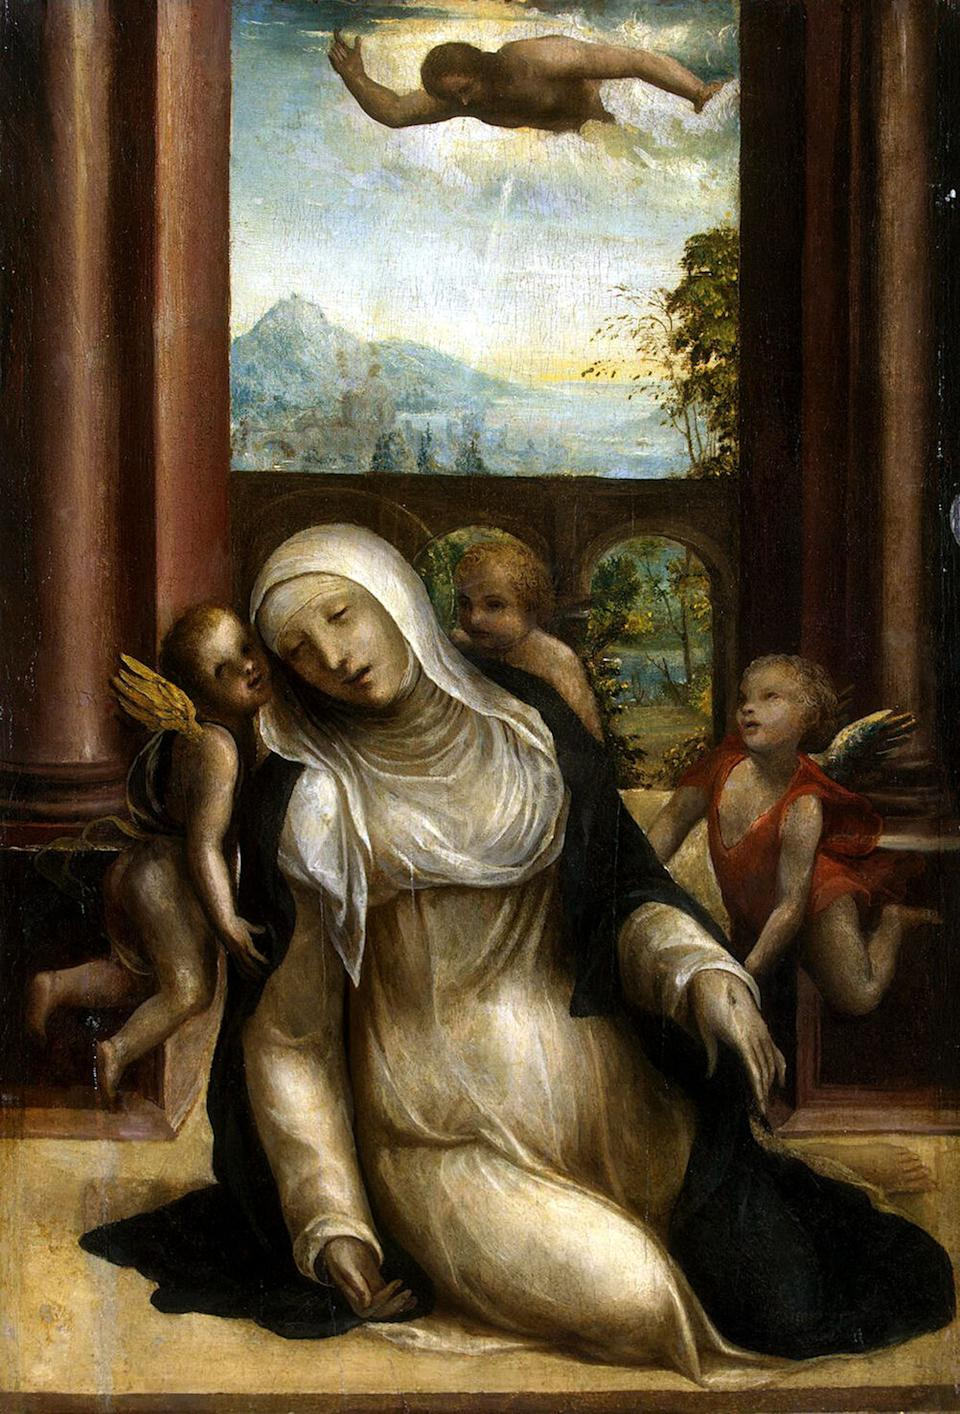 "The second-youngest of 25 children, <a href=""http://www.ncregister.com/blog/jimmy-akin/8-things-to-know-and-share-about-st.-catherine-of-siena"">Catherine of Siena</a> is one of only two patron saints of Italy. Catherine believed herself to be spiritually wed to Jesus and committed herself to a monastic life as a teenager. She was a <a href=""http://www.amazon.com/Setting-World-Fire-Astonishing-Catherine/dp/113727980X/ref=sr_1_1?ie=UTF8&qid=1442327019&sr=8-1&keywords=emling+AND+catherine"">peacemaker</a> during the 1368 revolution in Siena and convinced Pope Gregory XI to return the papacy to Rome during a tumultuous time for the Catholic Church. One story from her life tells of Jesus appearing to her with a heart in his hands and saying, ""Dearest daughter, as I took your heart away from you the other day, now, you see, I am giving you mine, so that you can go on living with it for ever."" She was canonized in 1461."